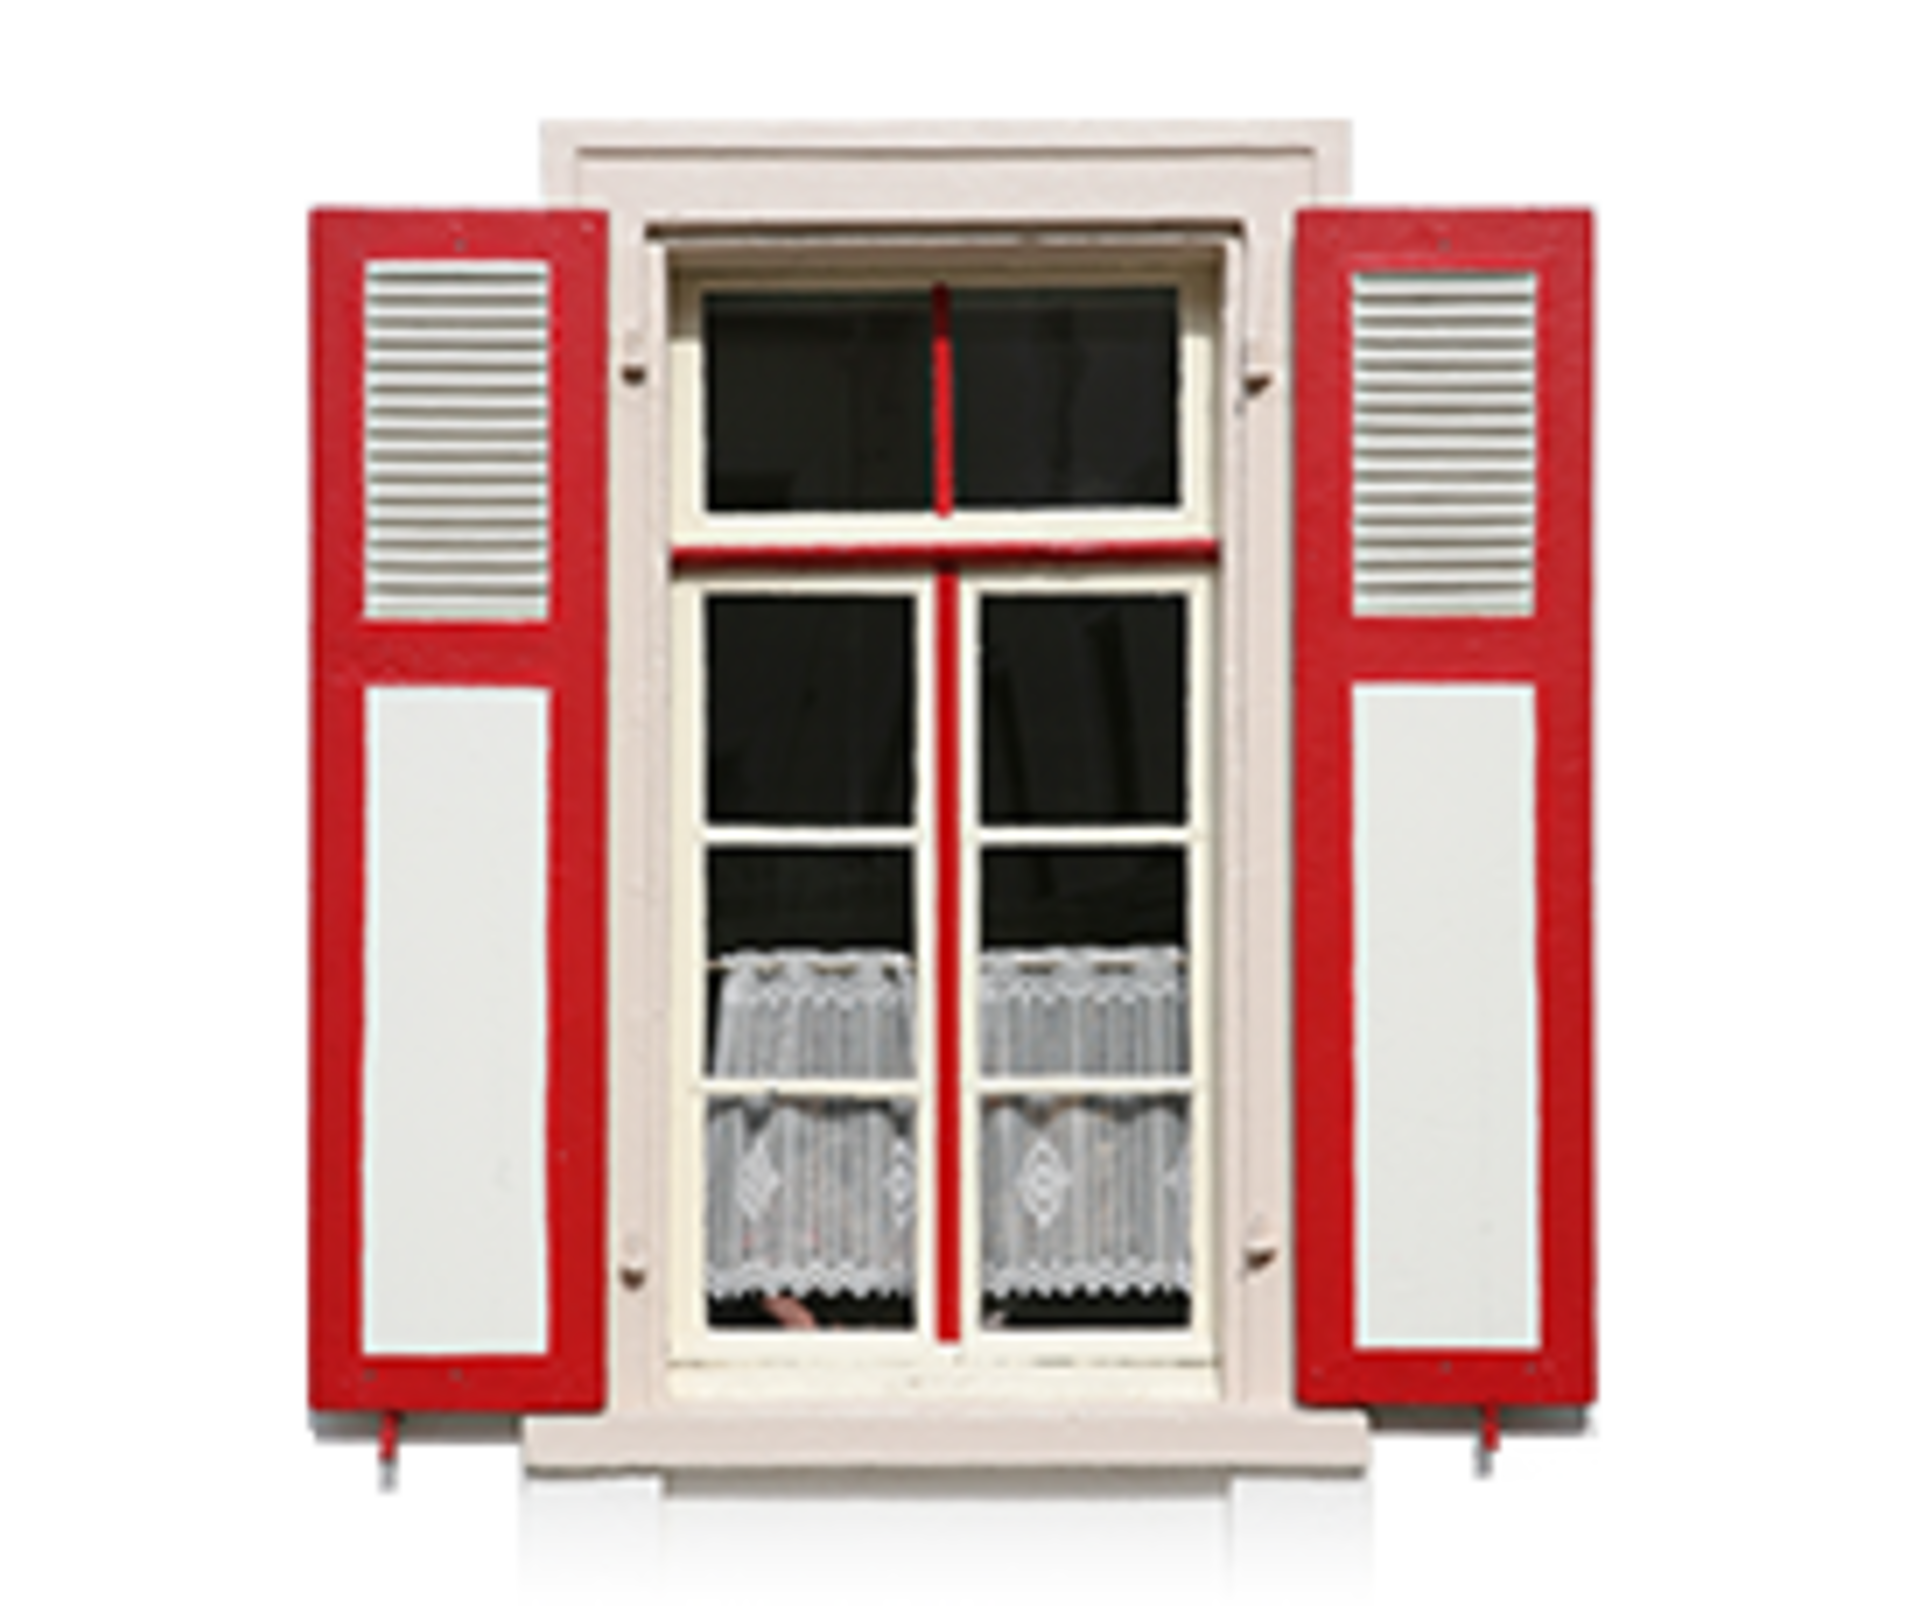 Did You Know? Prolong the Life of Your Windows